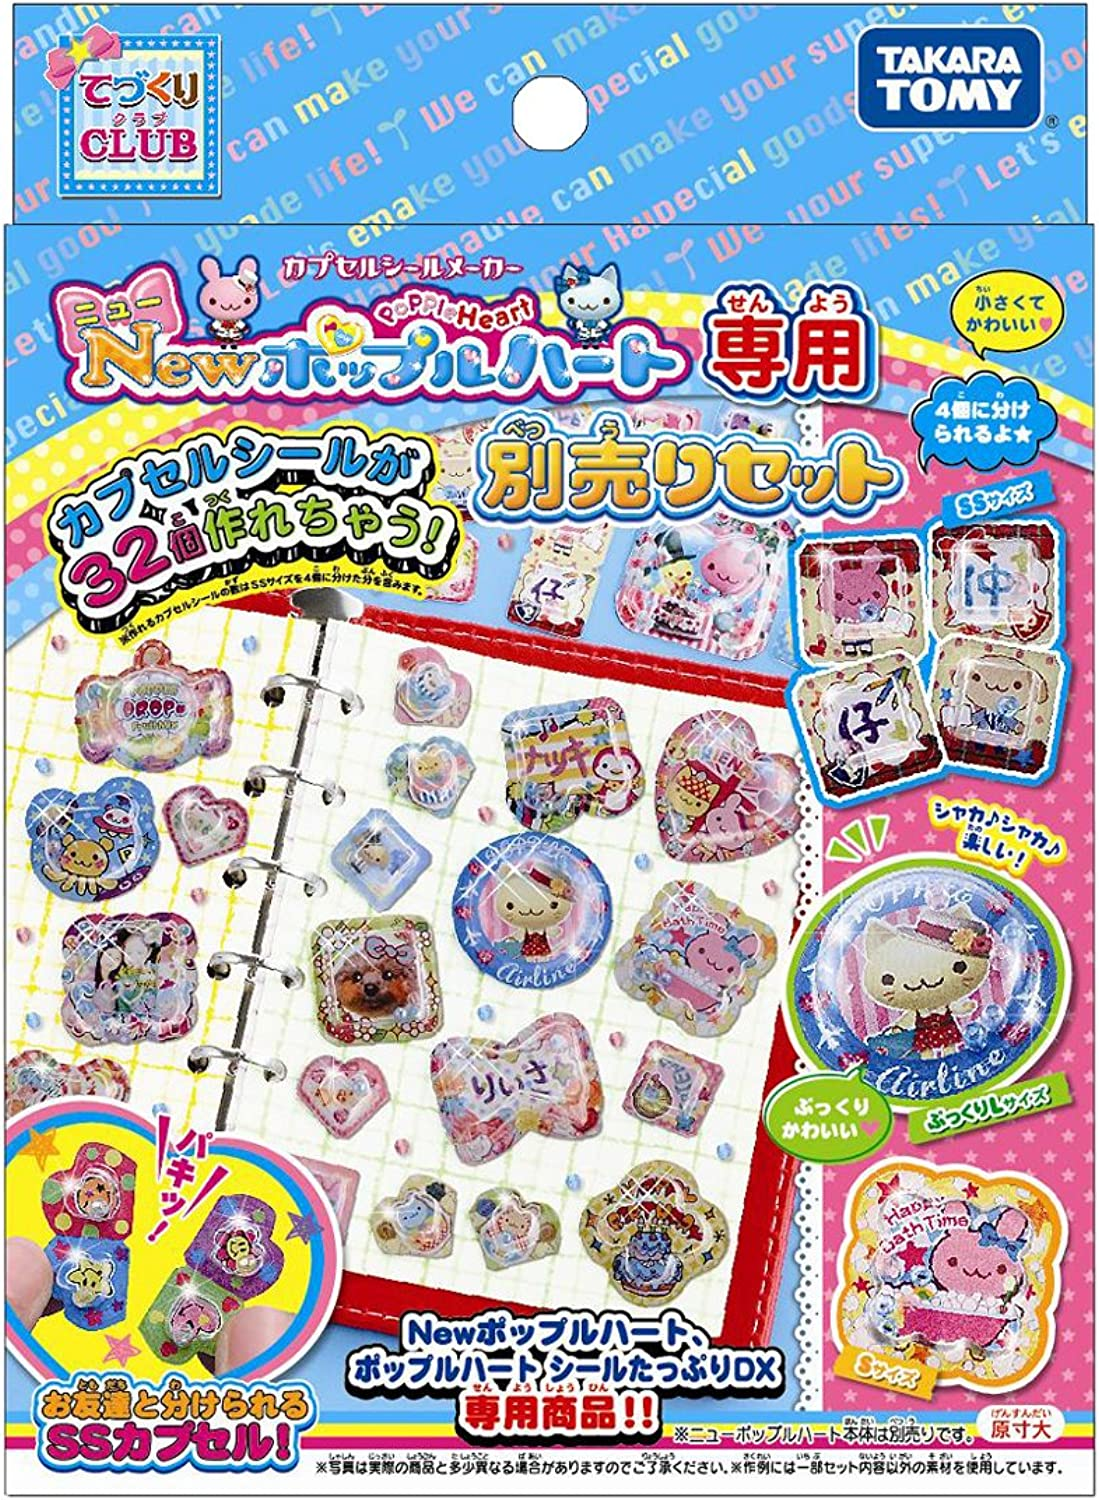 NEW Popple Heart only only only set sold separately (japan import) B005WP01AW | Fuxin